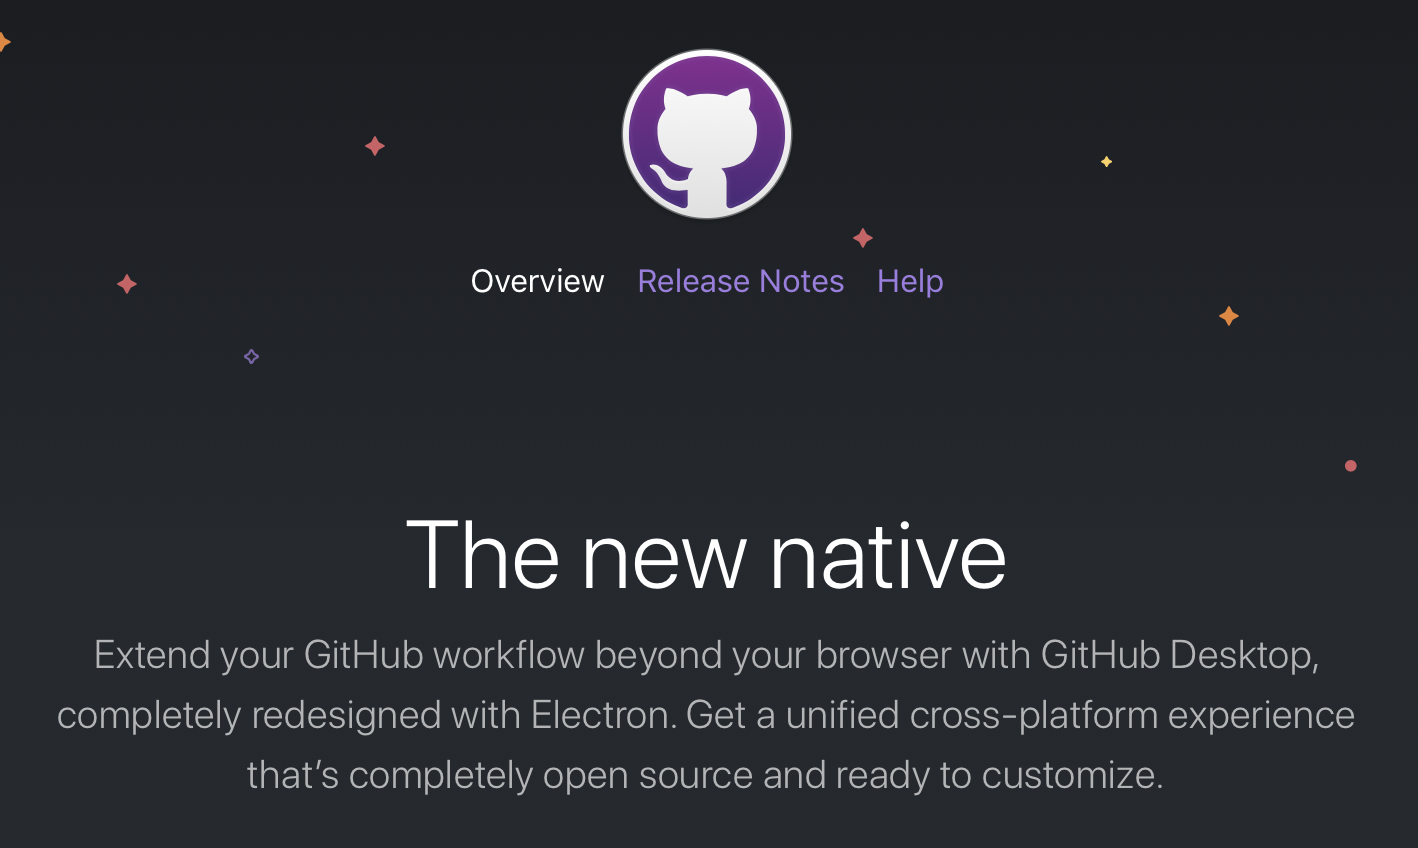 Website presents new version of GitHub Desktop